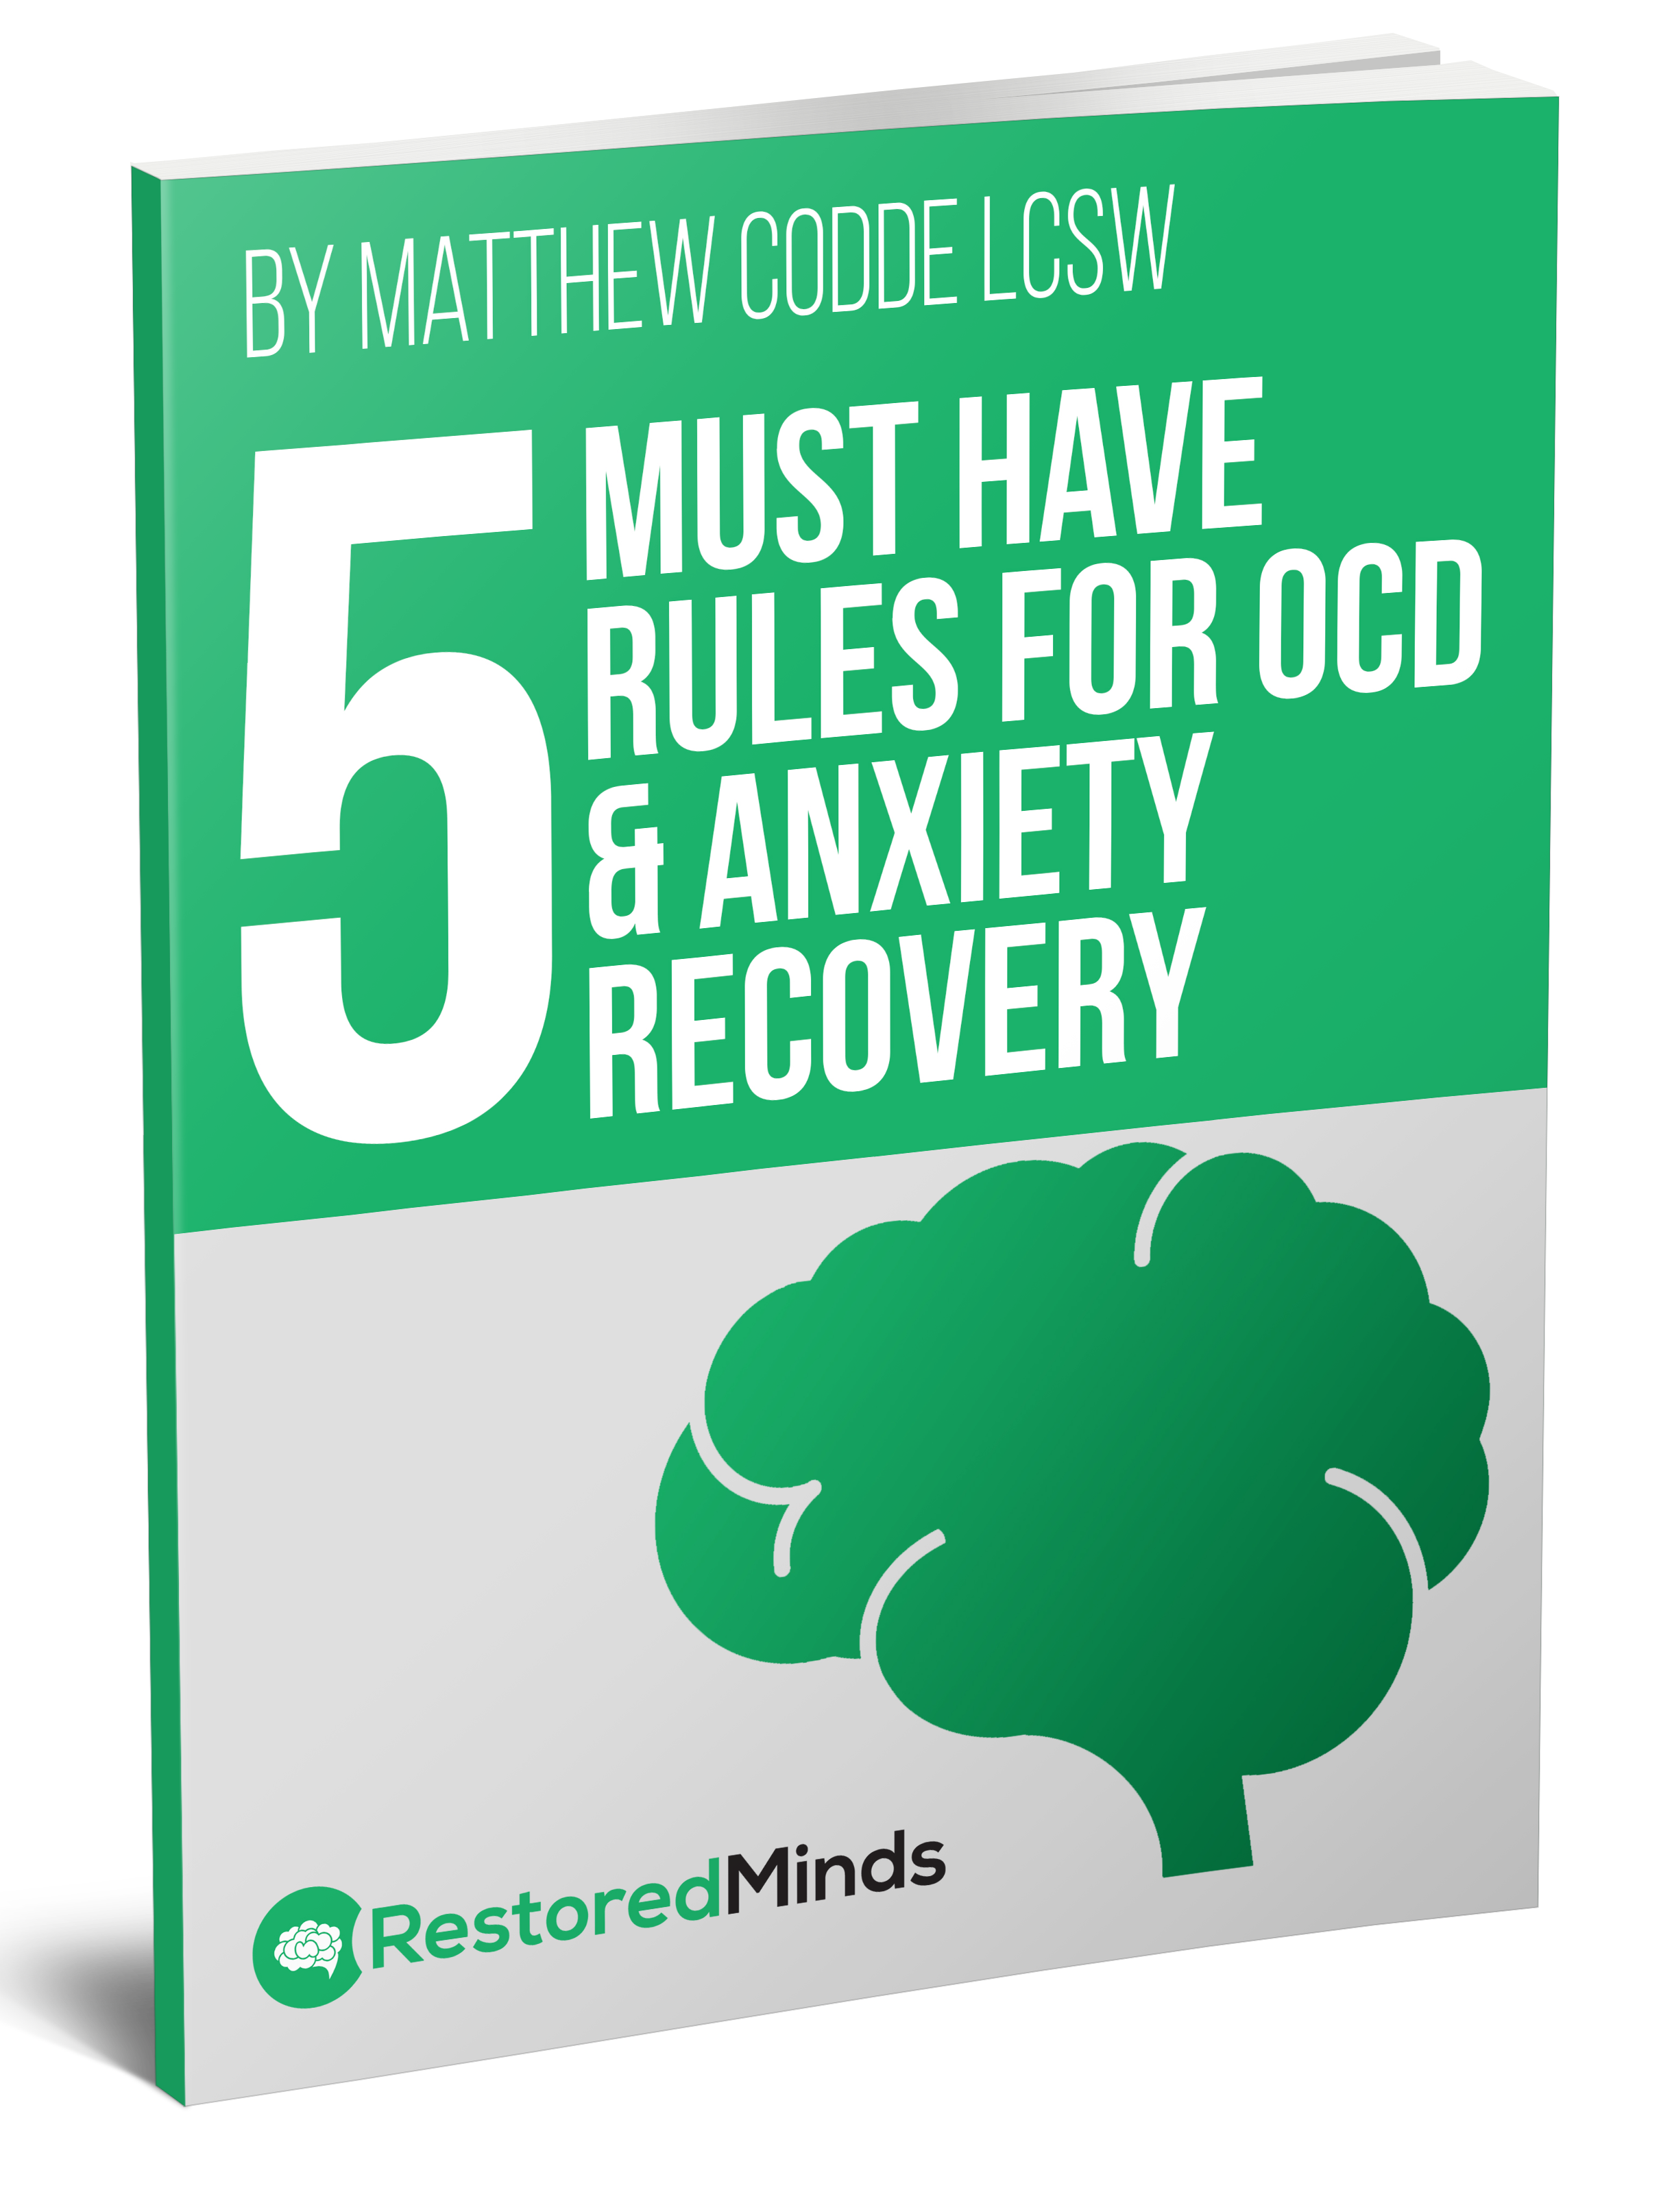 Restored Minds - Online Workshops For OCD & Anxiety